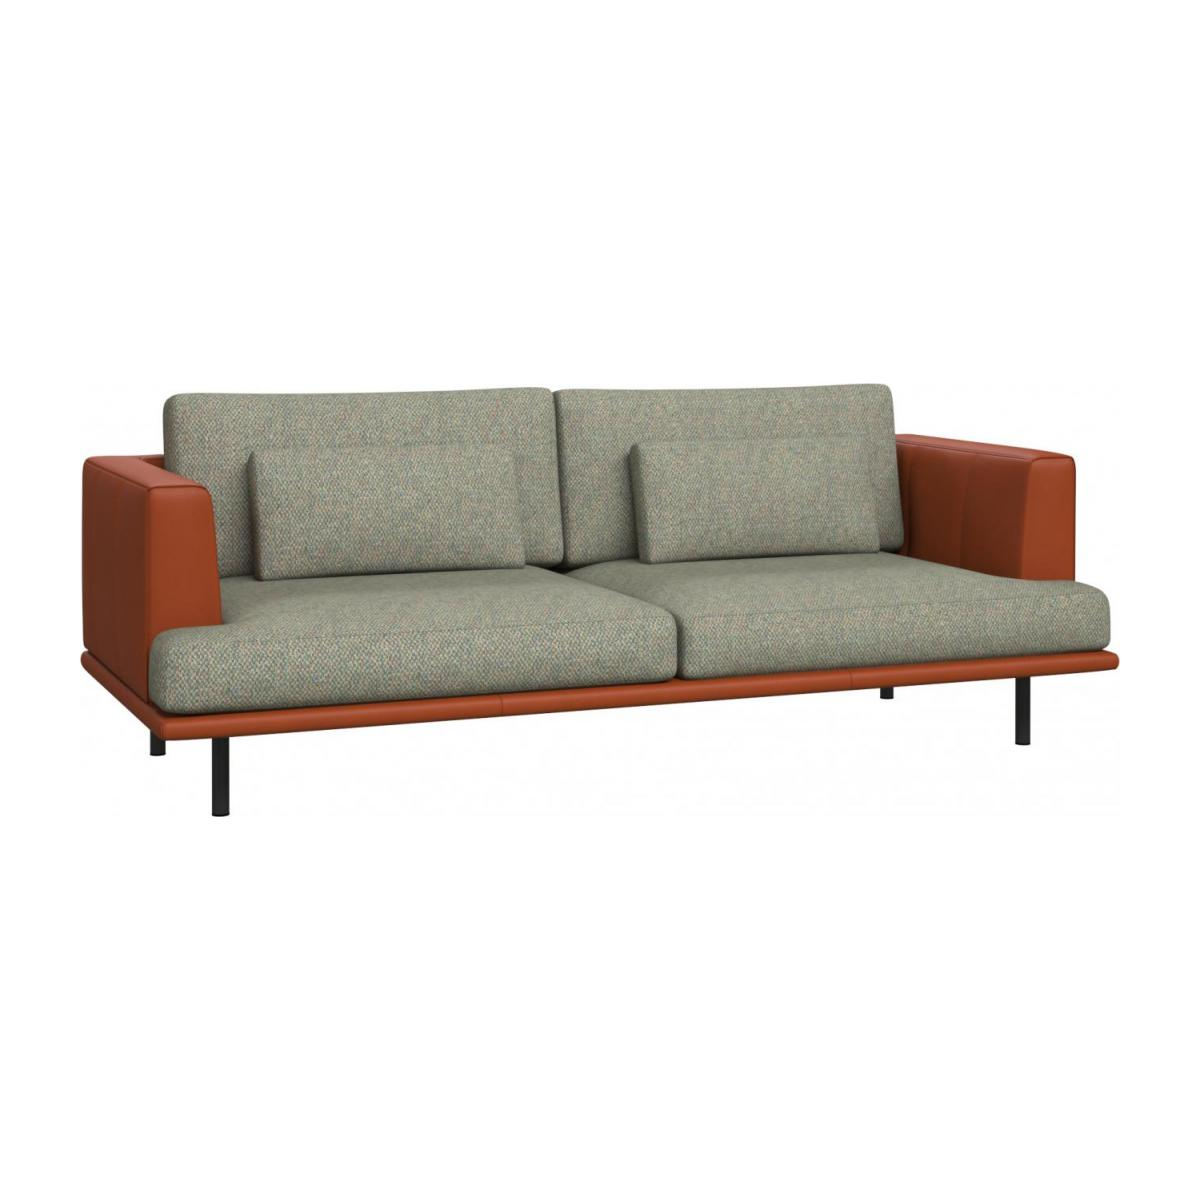 3 seater sofa in Bellagio fabric, organic green with base and armrests in brown leather n°1